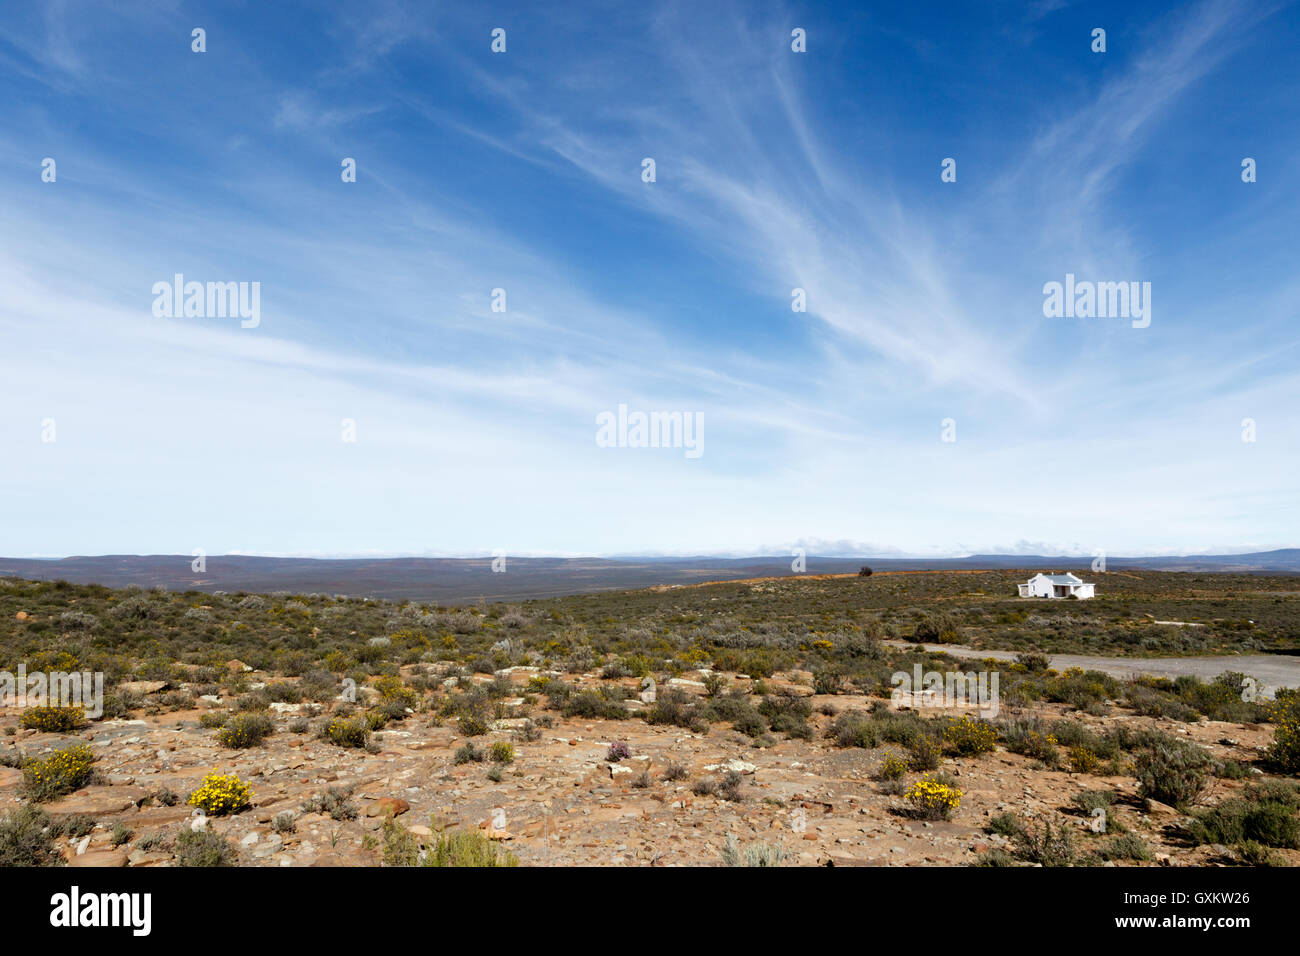 Landscape Sutherland -Sutherland is a town with about 2,841 inhabitants in the Northern Cape province of South Africa. - Stock Image